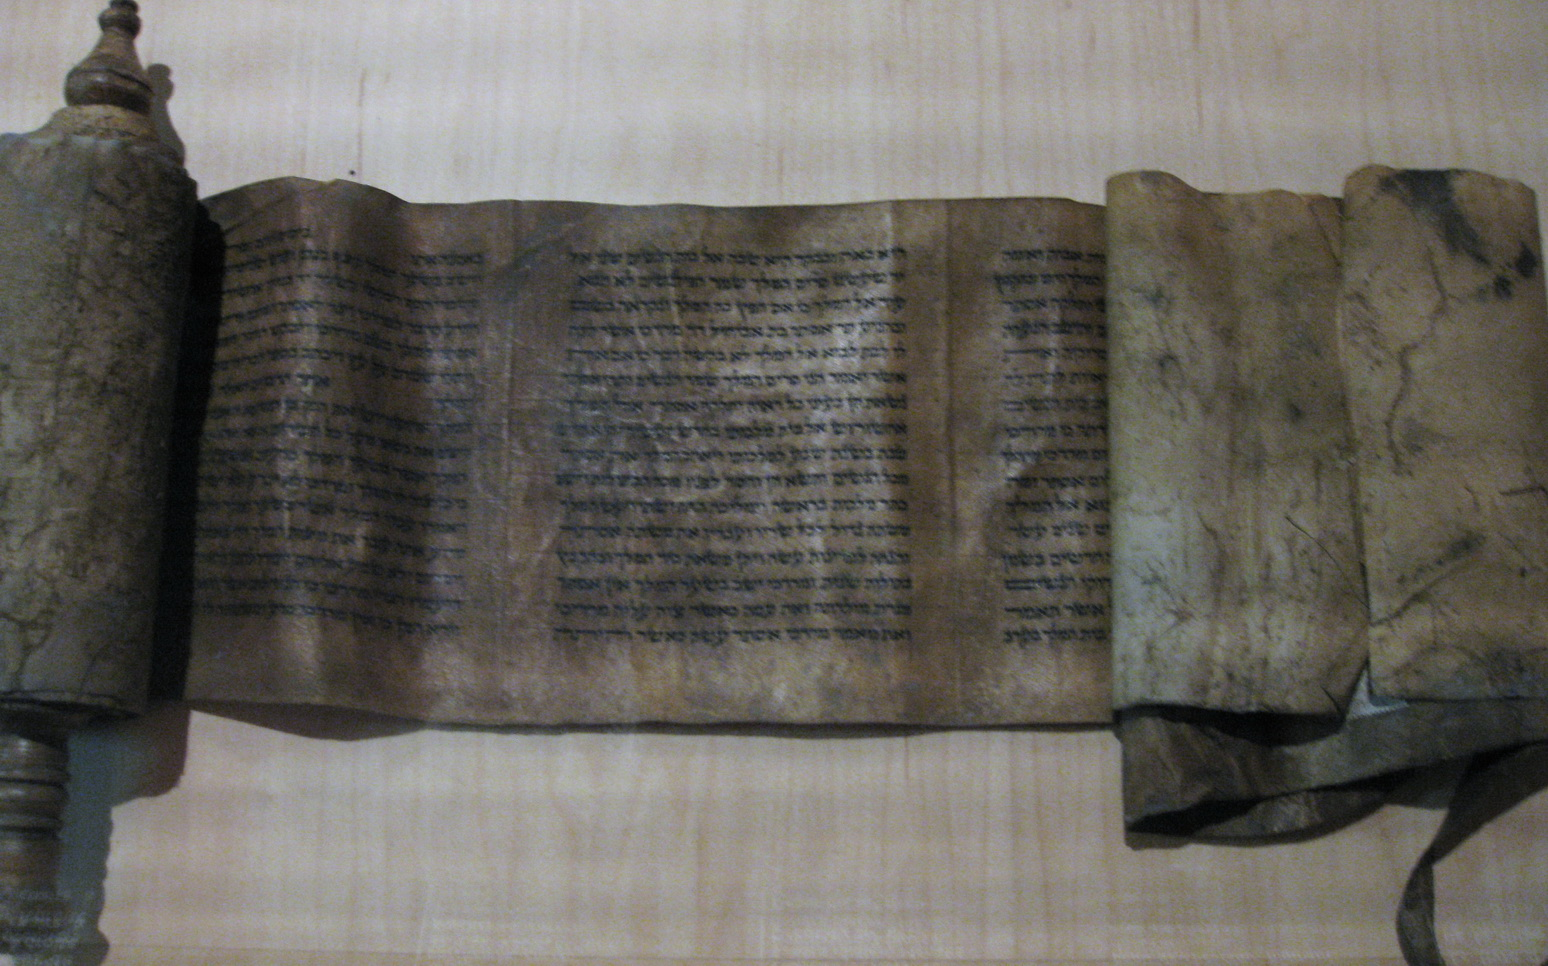 Book of Esther IMG 1826-2